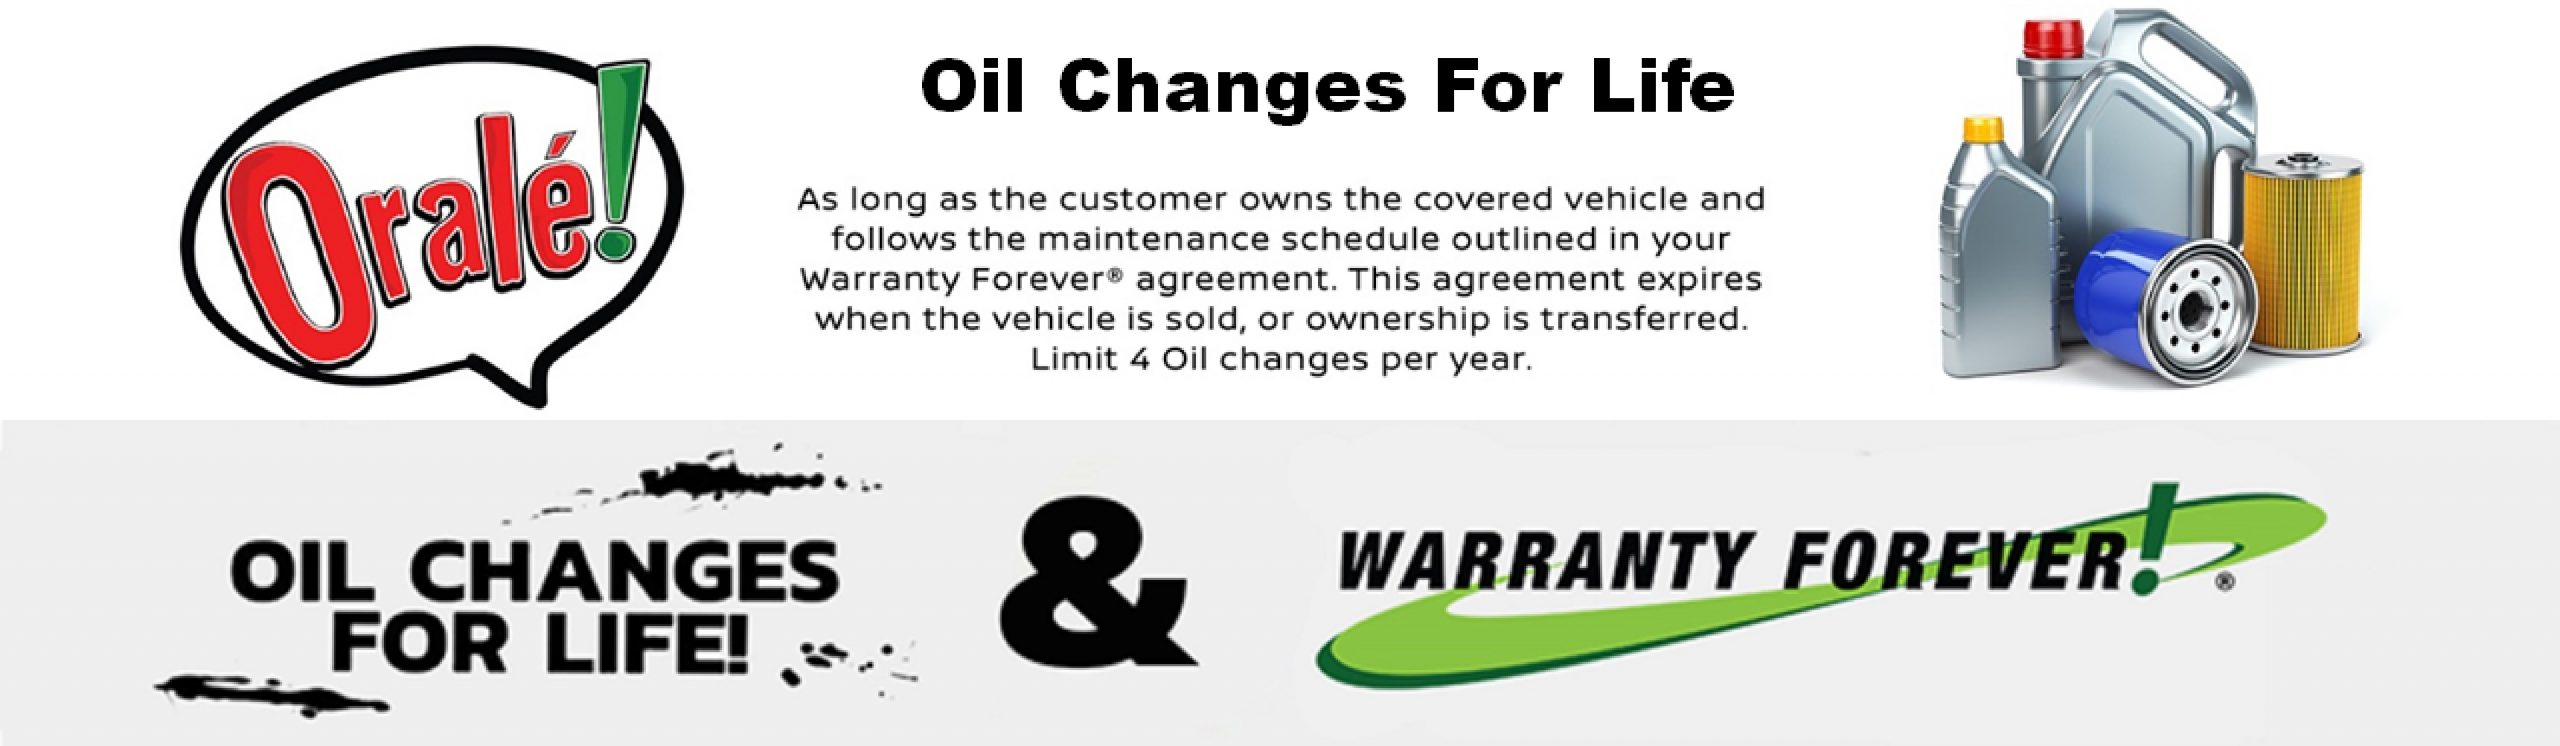 Infiniti Warranty Forever and oil changes for life